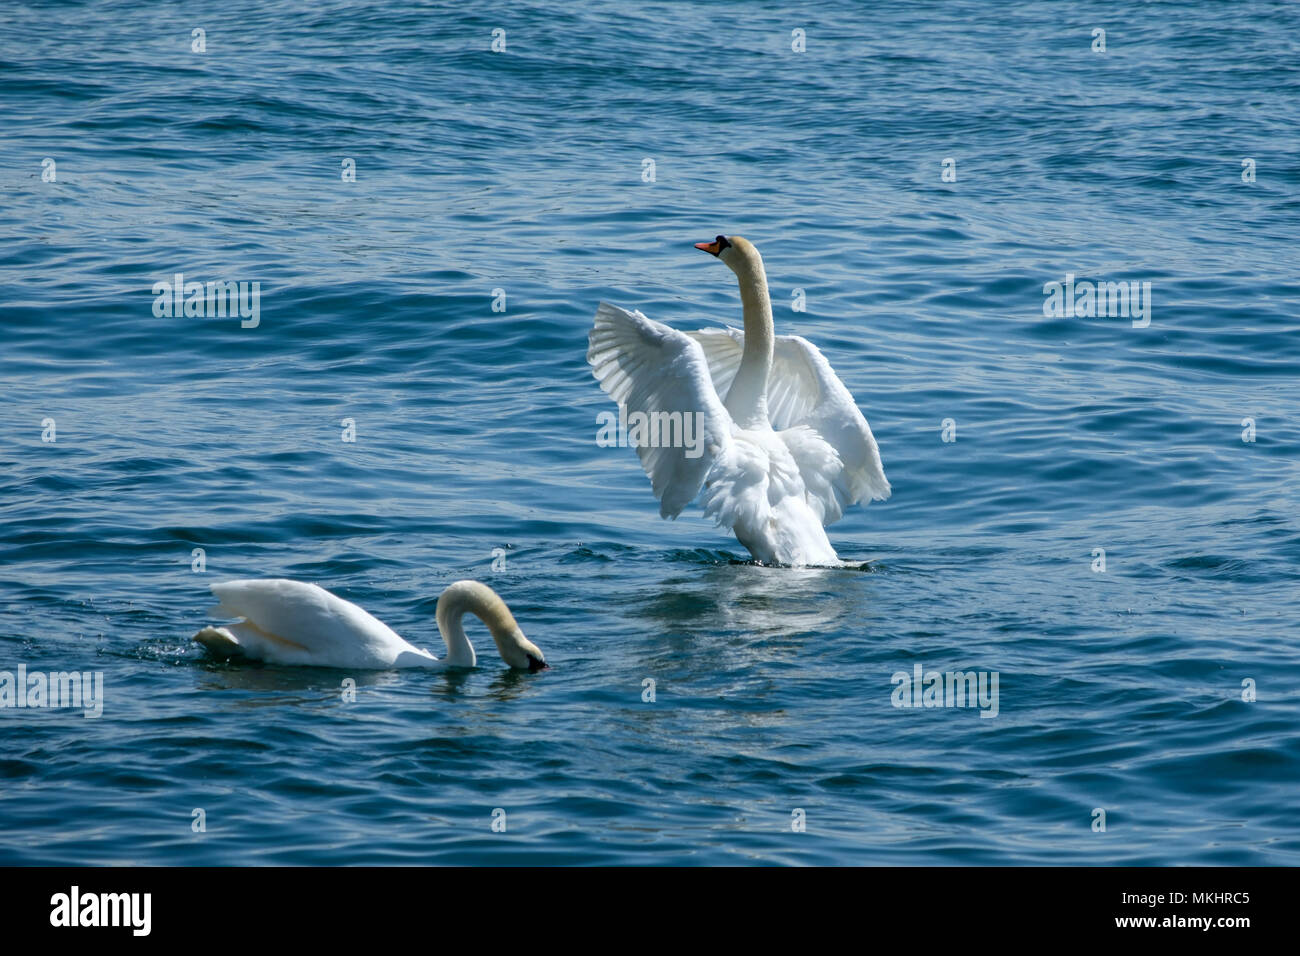 Swan flapping wings - Stock Image